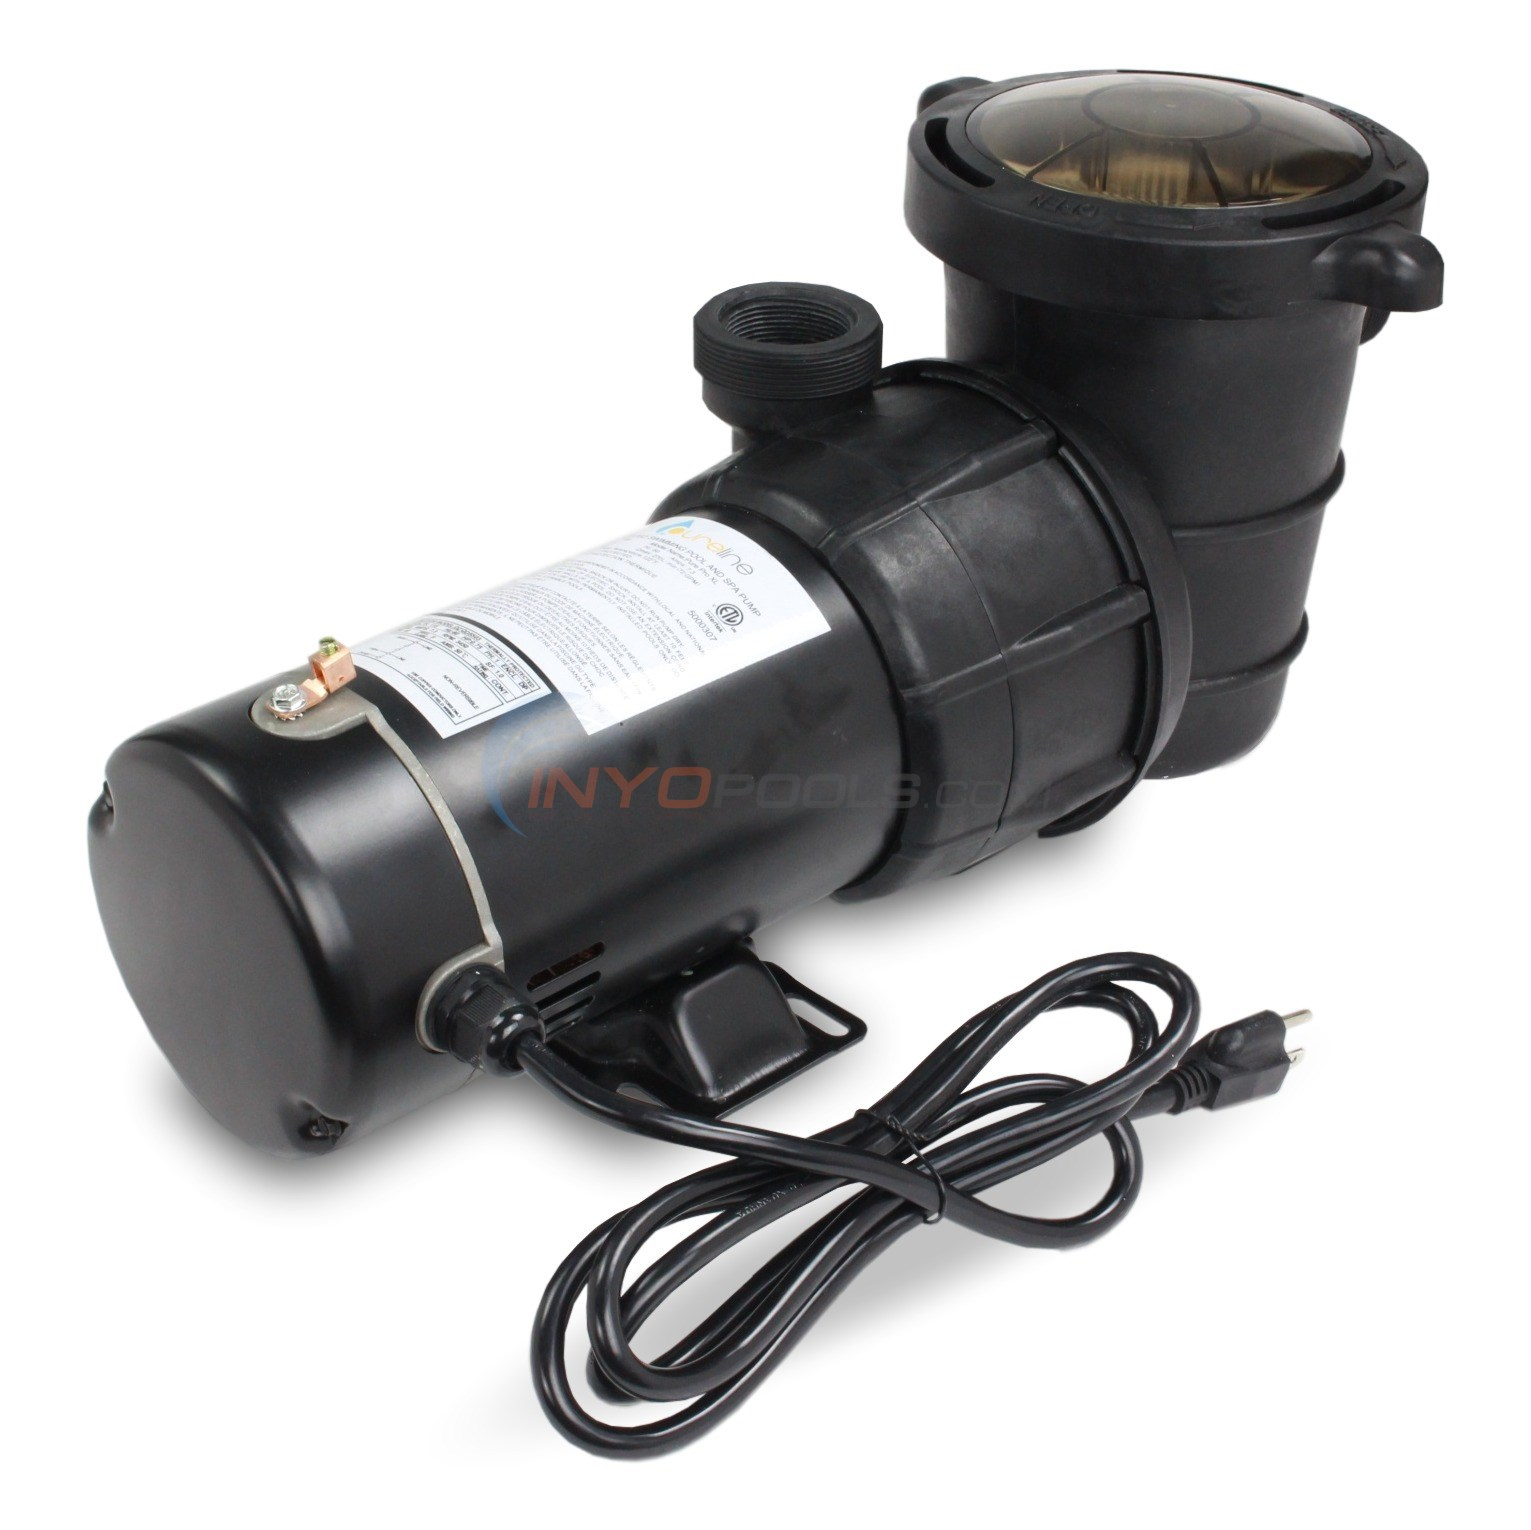 pureline pl1500 01?format=jpg&scale=both&anchor=middlecenter&autorotate=true&mode=pad&width=650&height=650 pureline 1 hp above ground pool pump ne6170b inyopools com  at bakdesigns.co